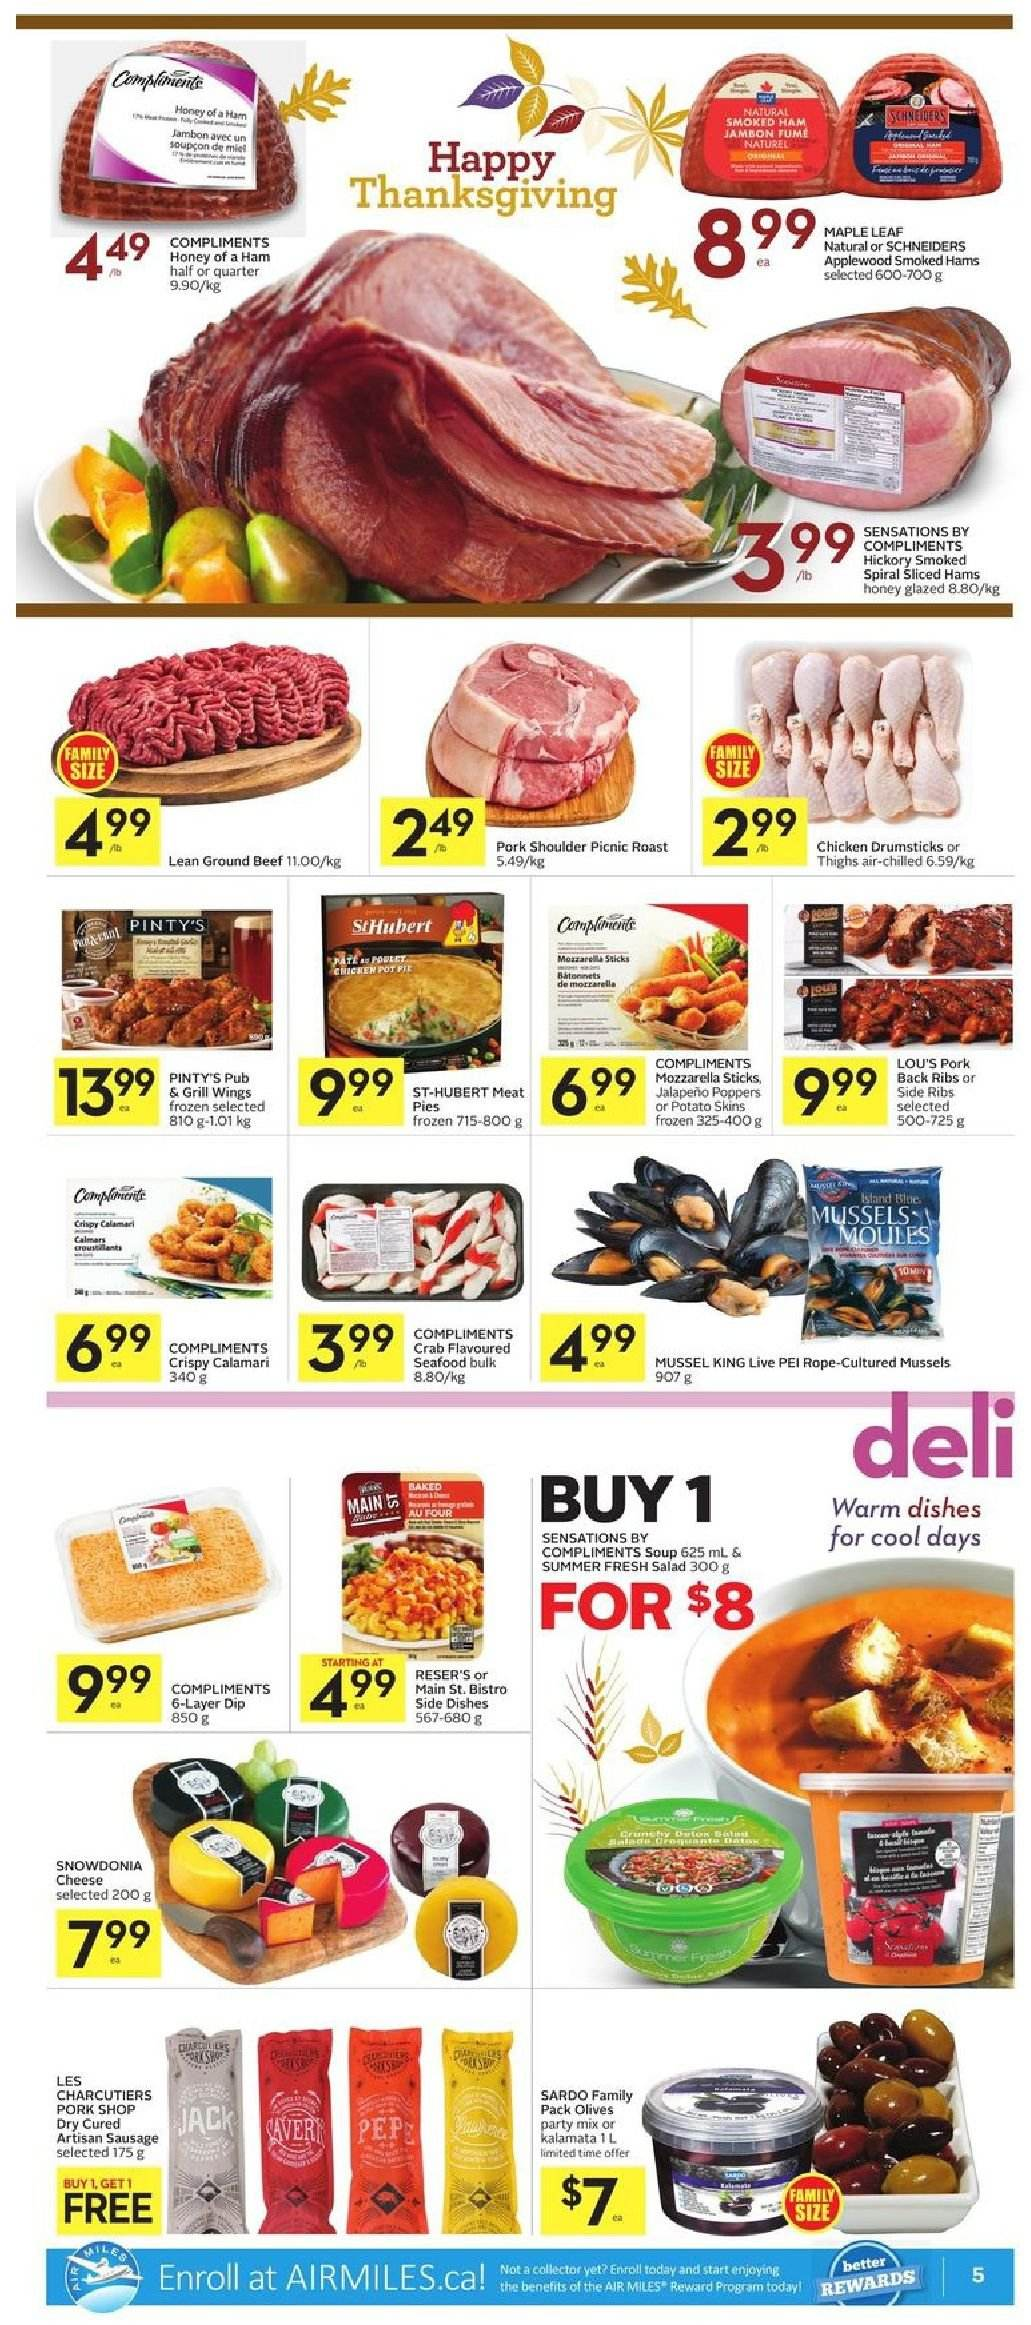 Foodland Flyer  - October 04, 2018 - October 10, 2018. Page 5.